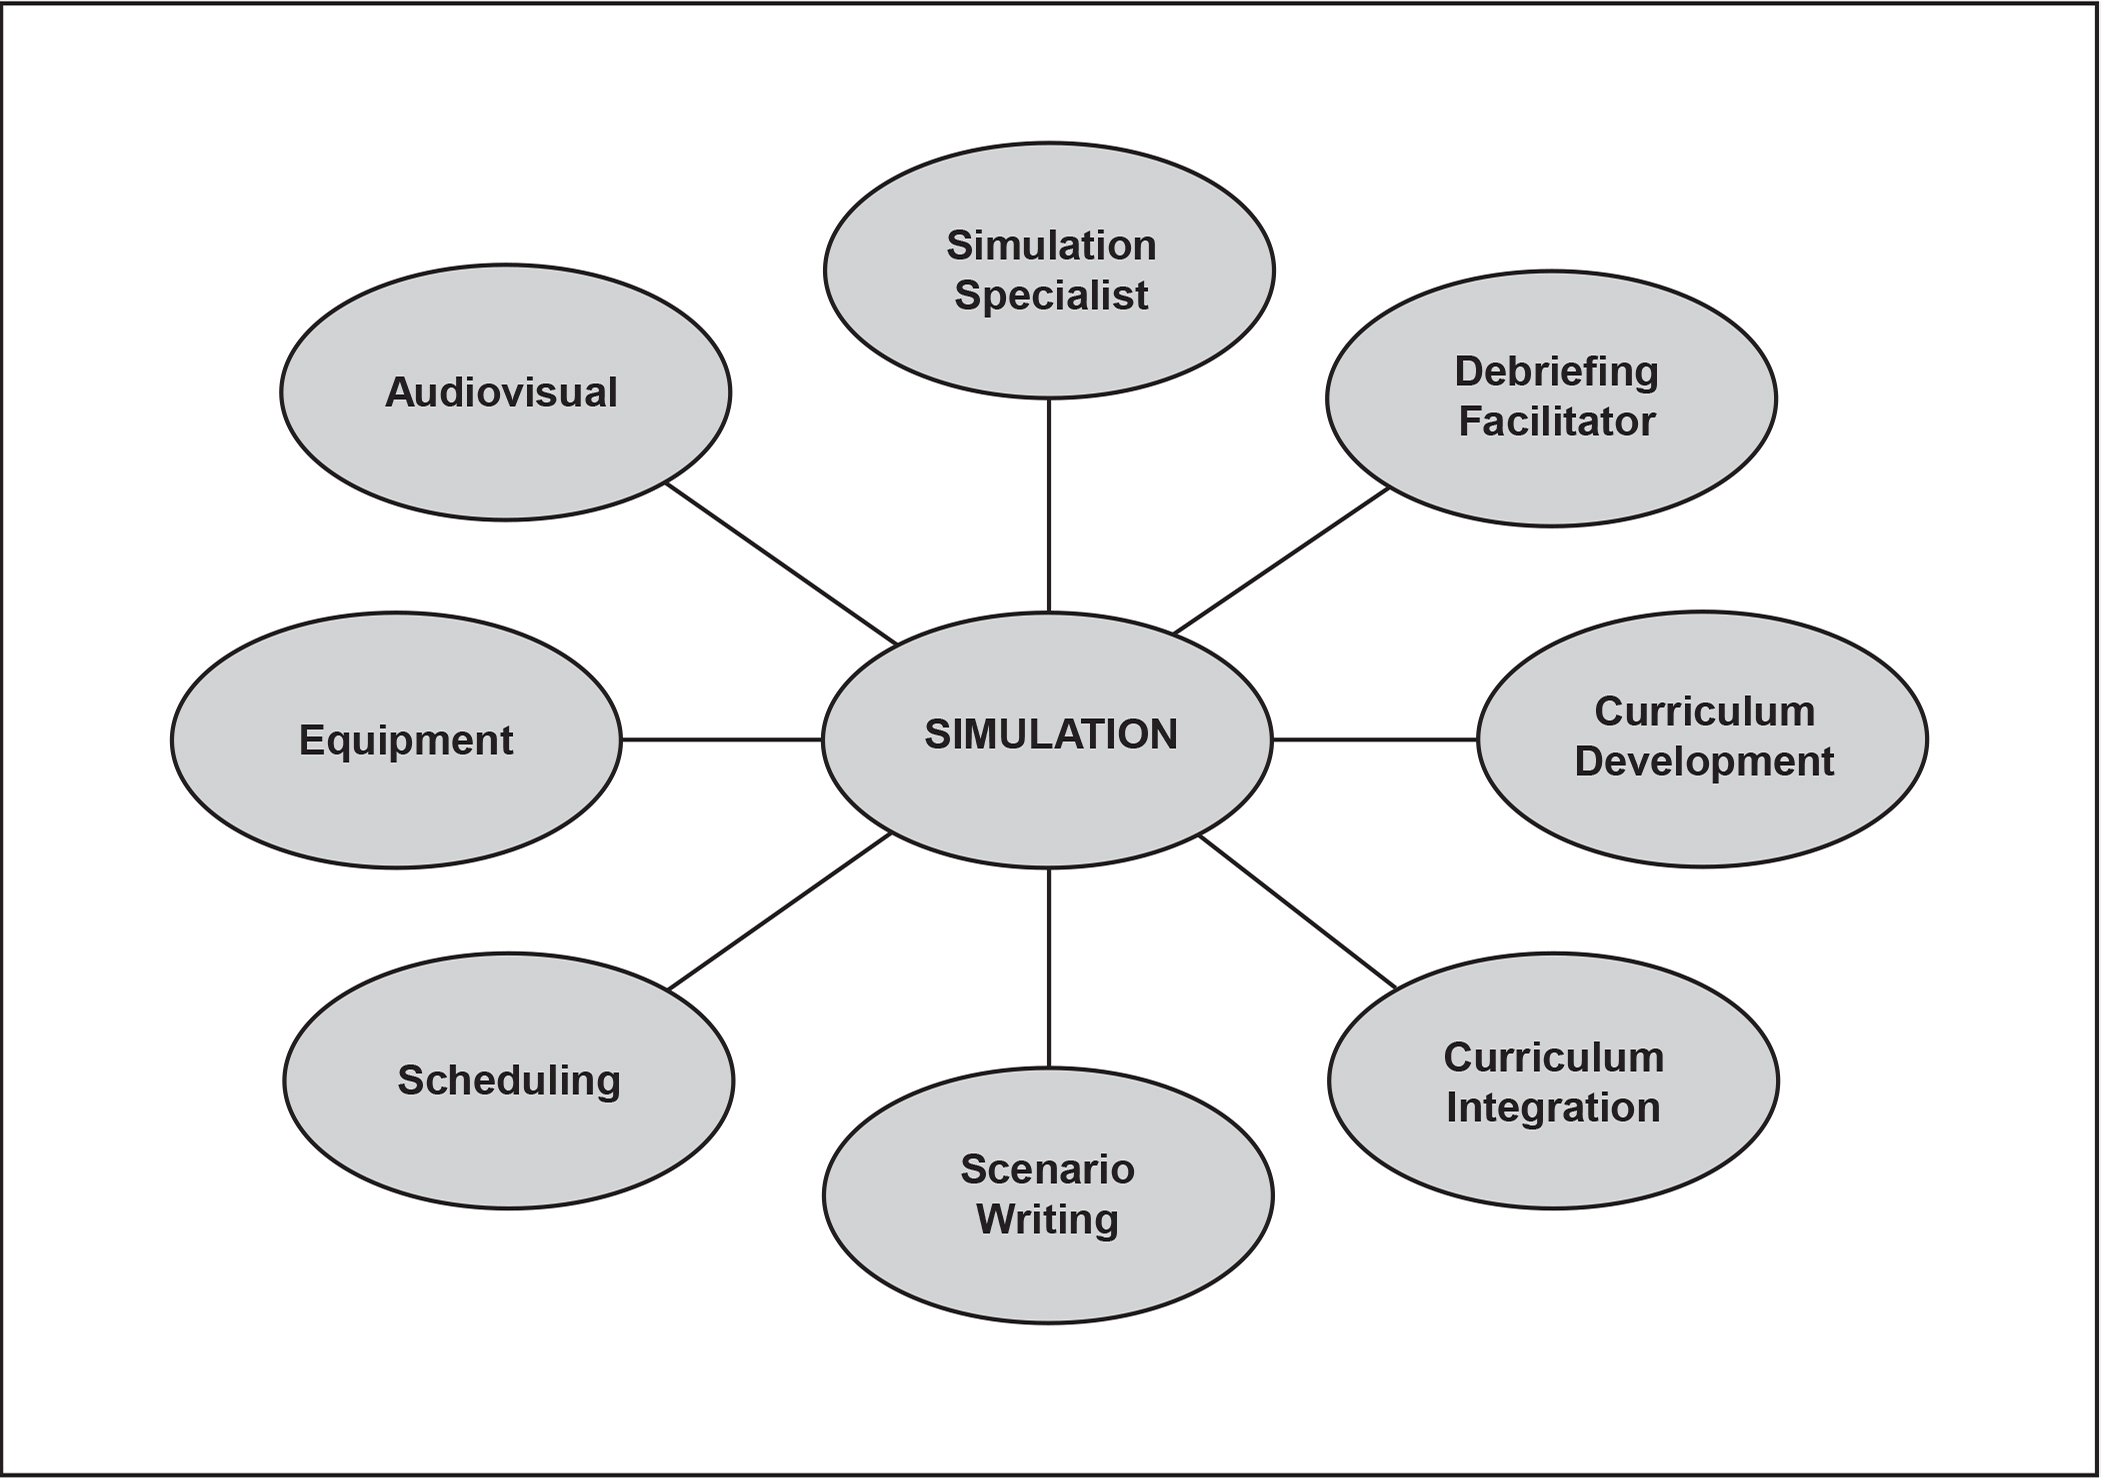 Issues involved in using simulation as an educational tool.